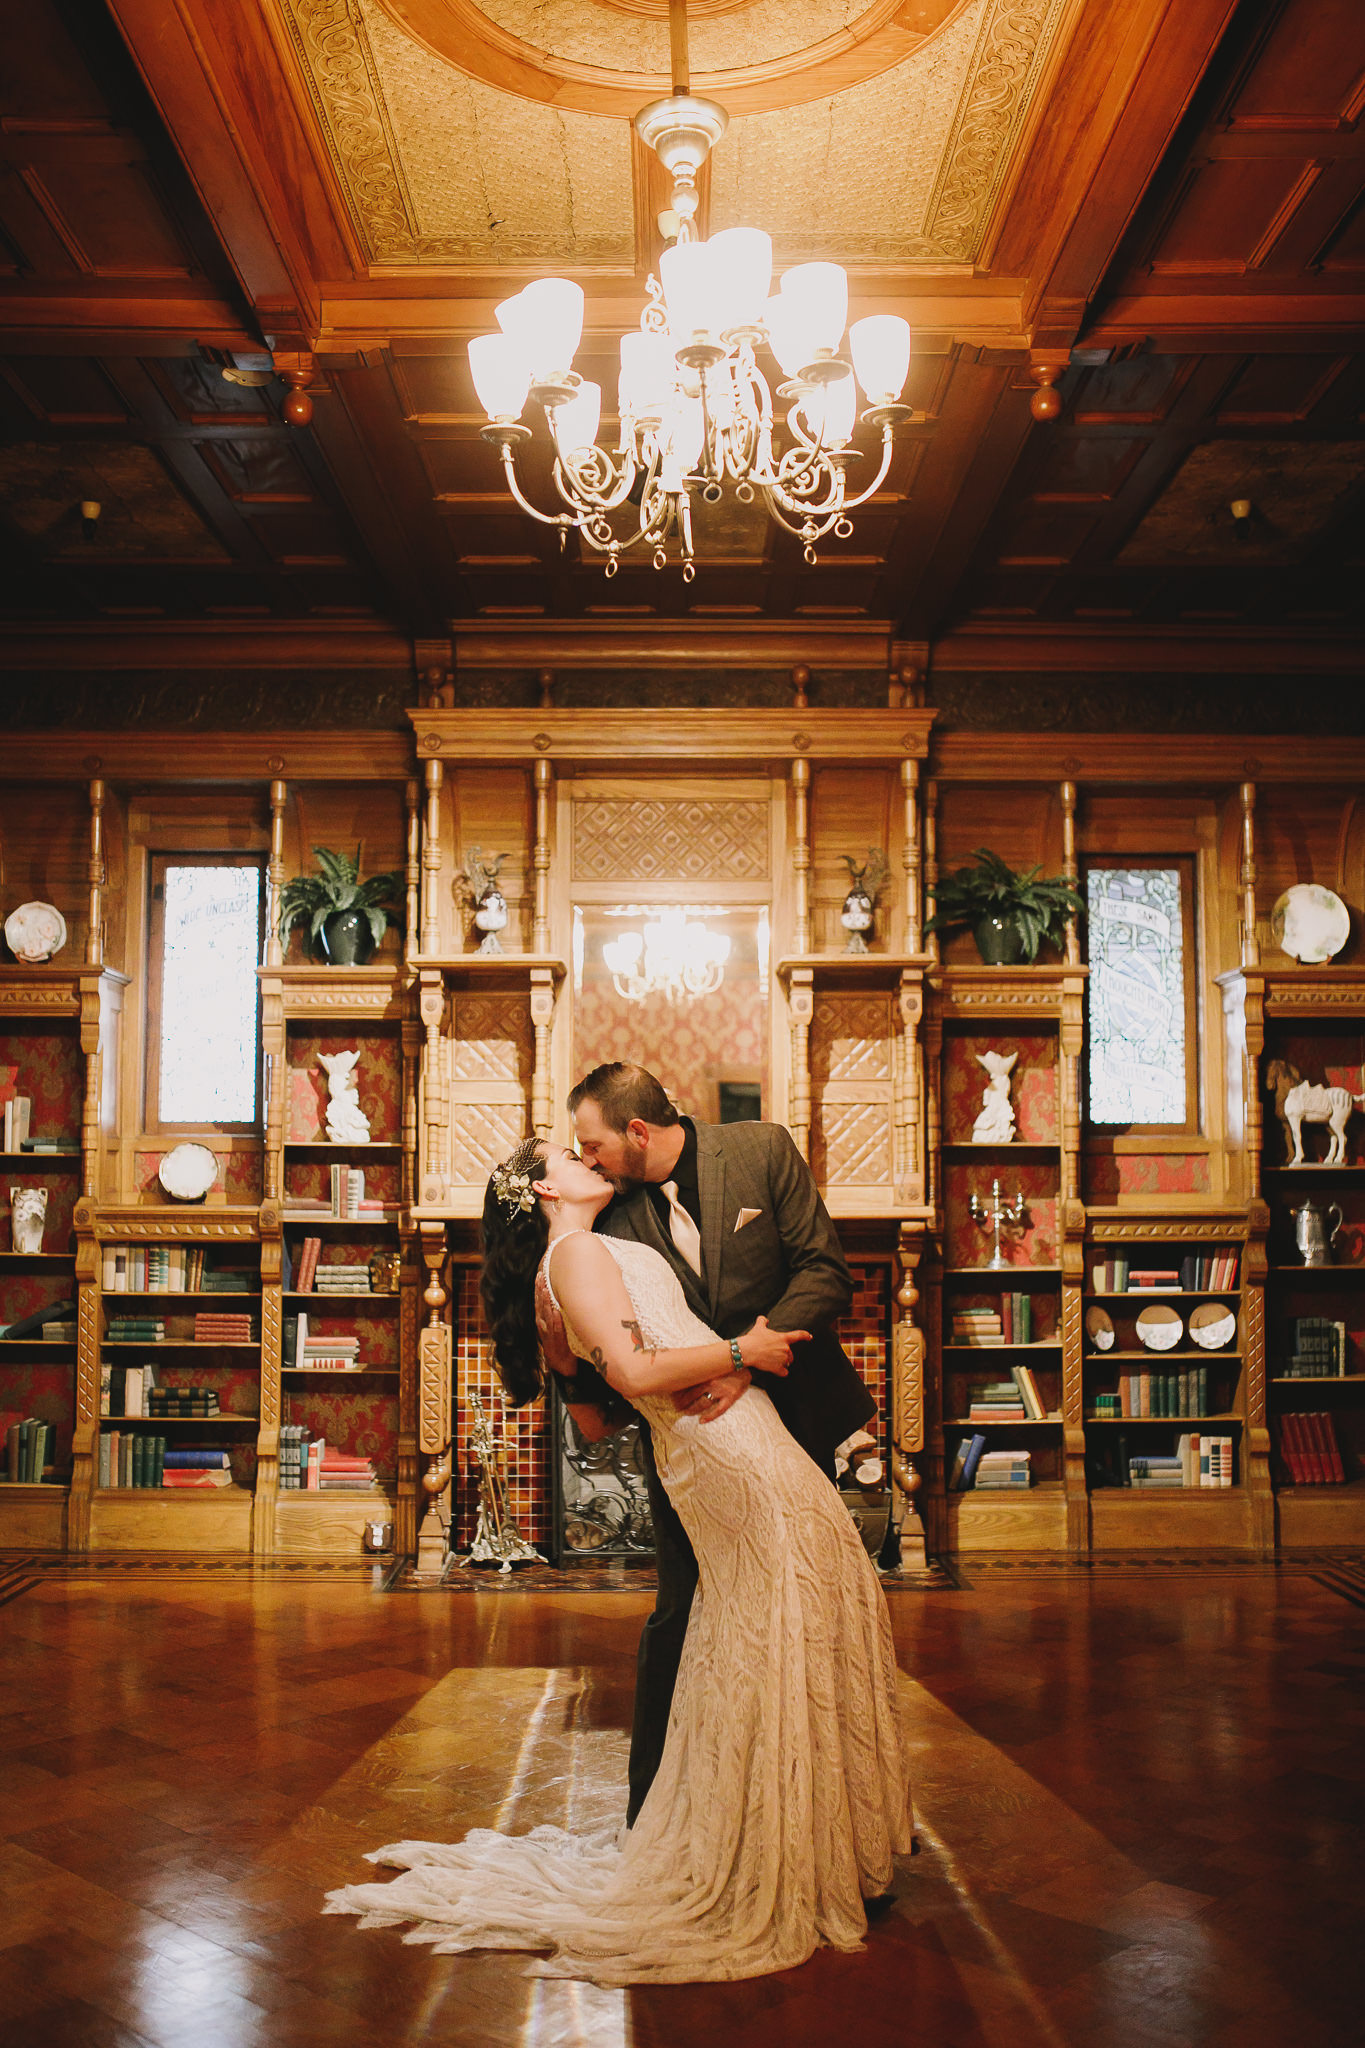 Archer Inspired Photography Sara and Aaron Winchester Mystery House NorCal San Jose California Wedding Photographer-387.jpg